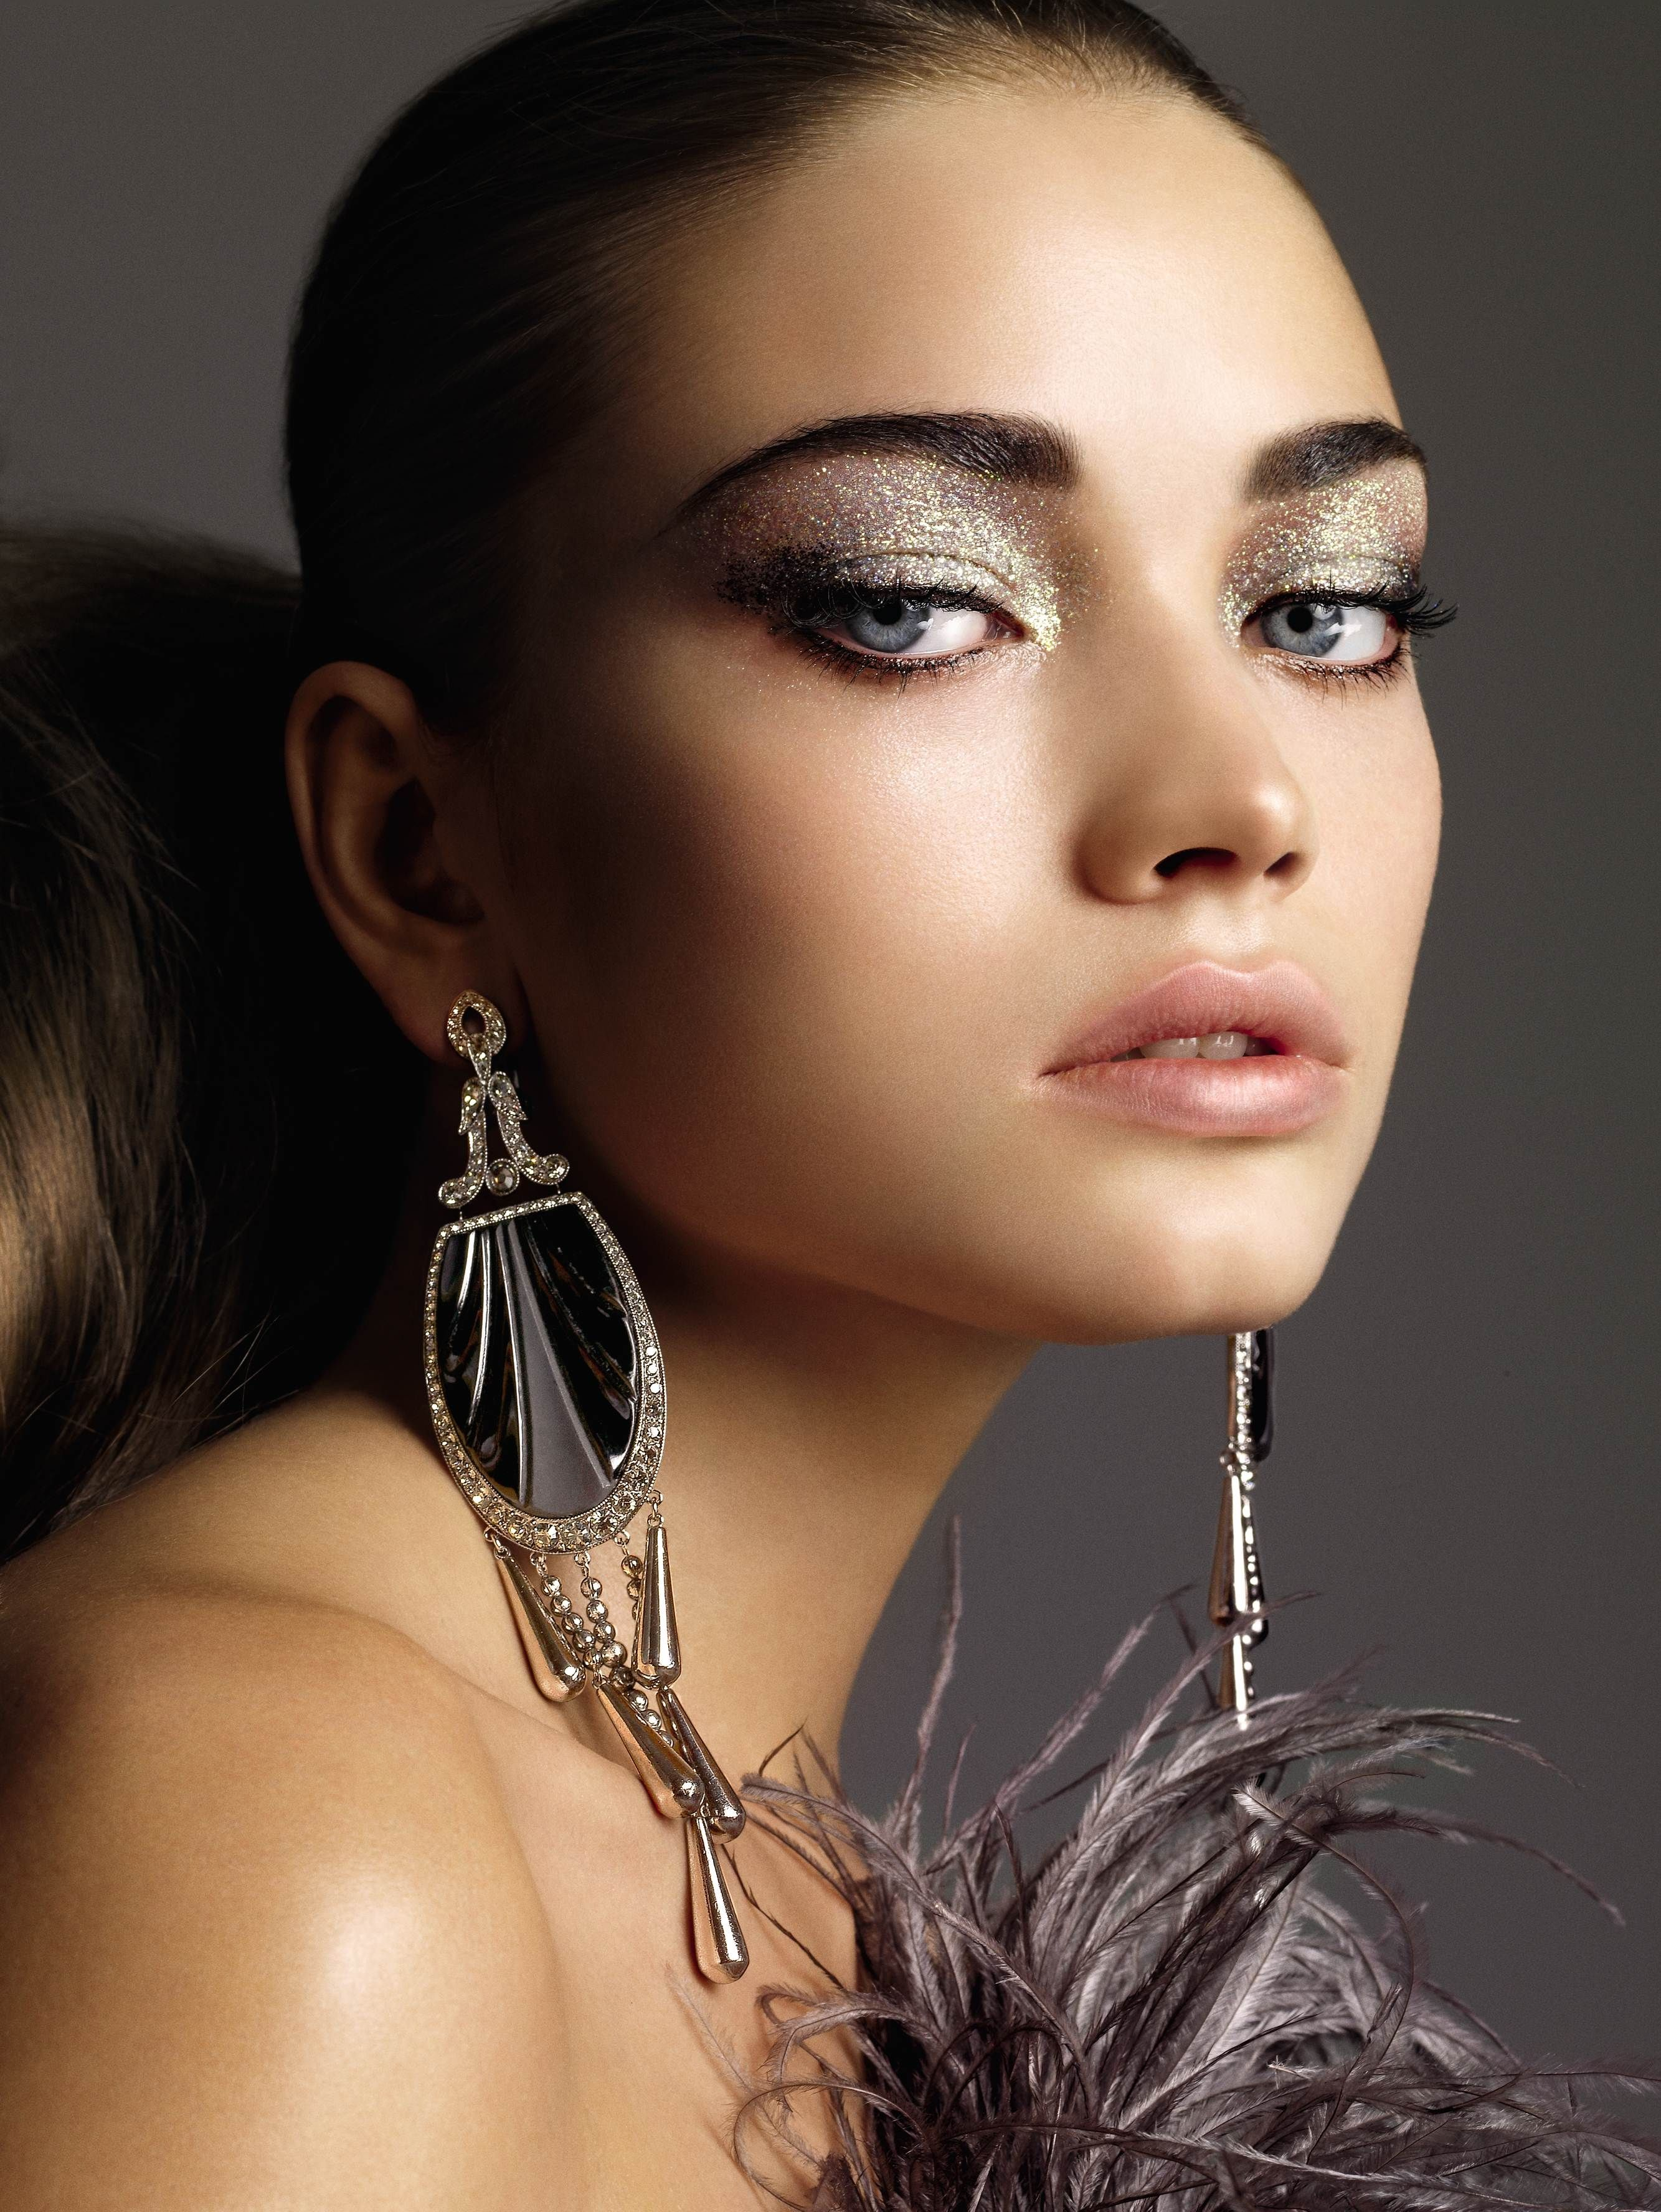 The secret to keeping sparkly shadow from looking juvenile? A little black liner. First trace the upper lids with a black pencil. Then dust a slightly shimmery shadow over the entire lid. Choose gold for warm complexions and silver or platinum for cool ones. Finish with black mascara.